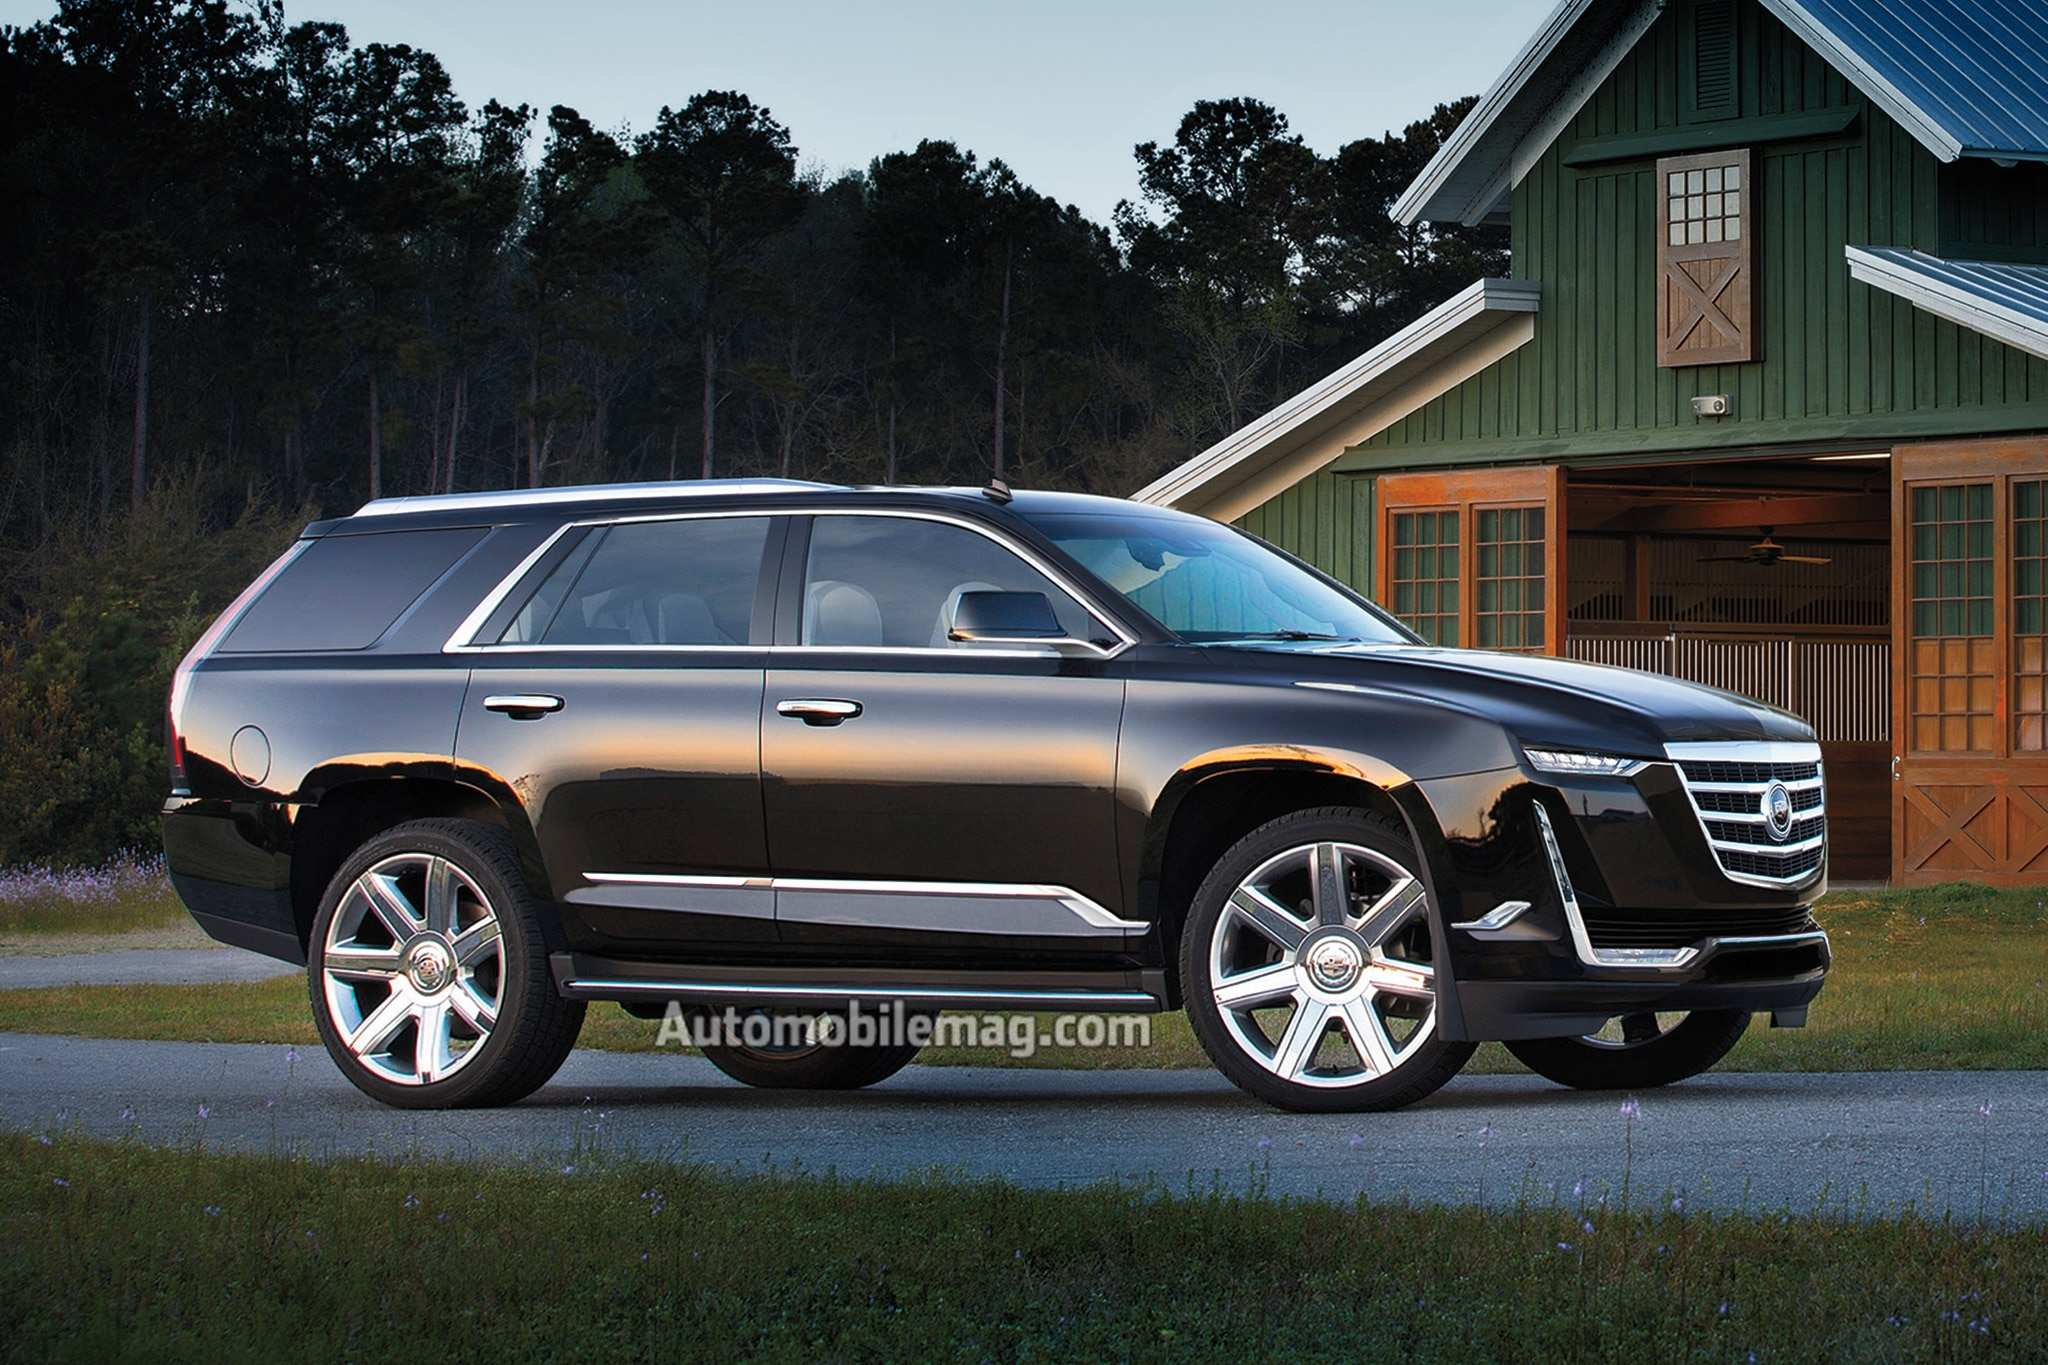 17 All New Cadillac Escalade 2020 Model Spy Shoot